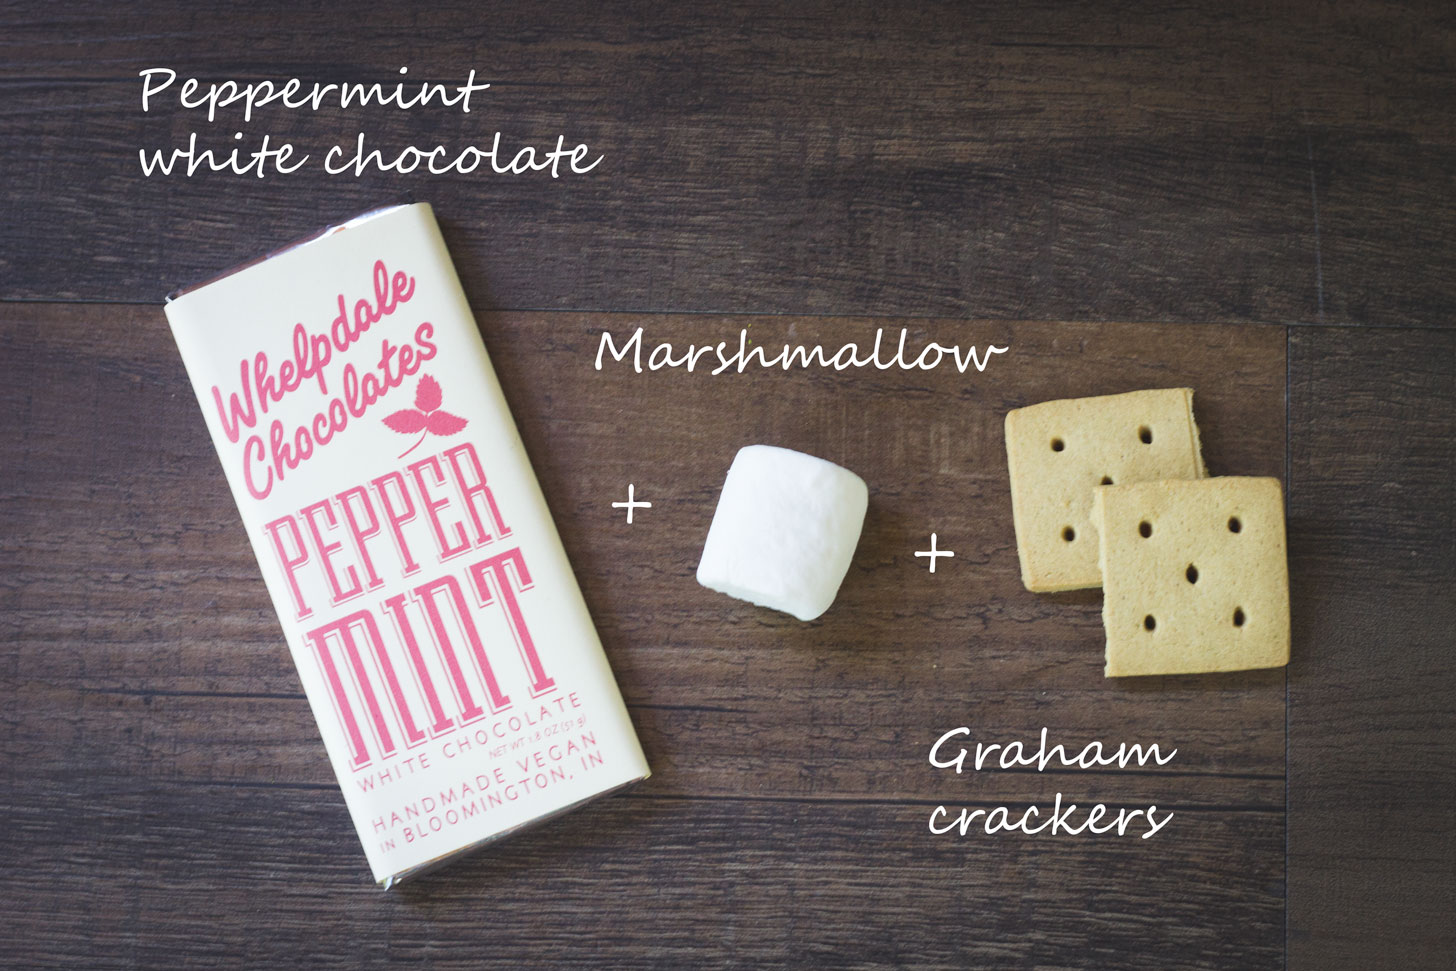 Peppermint white chocolate, marshmallow, and graham crackers.